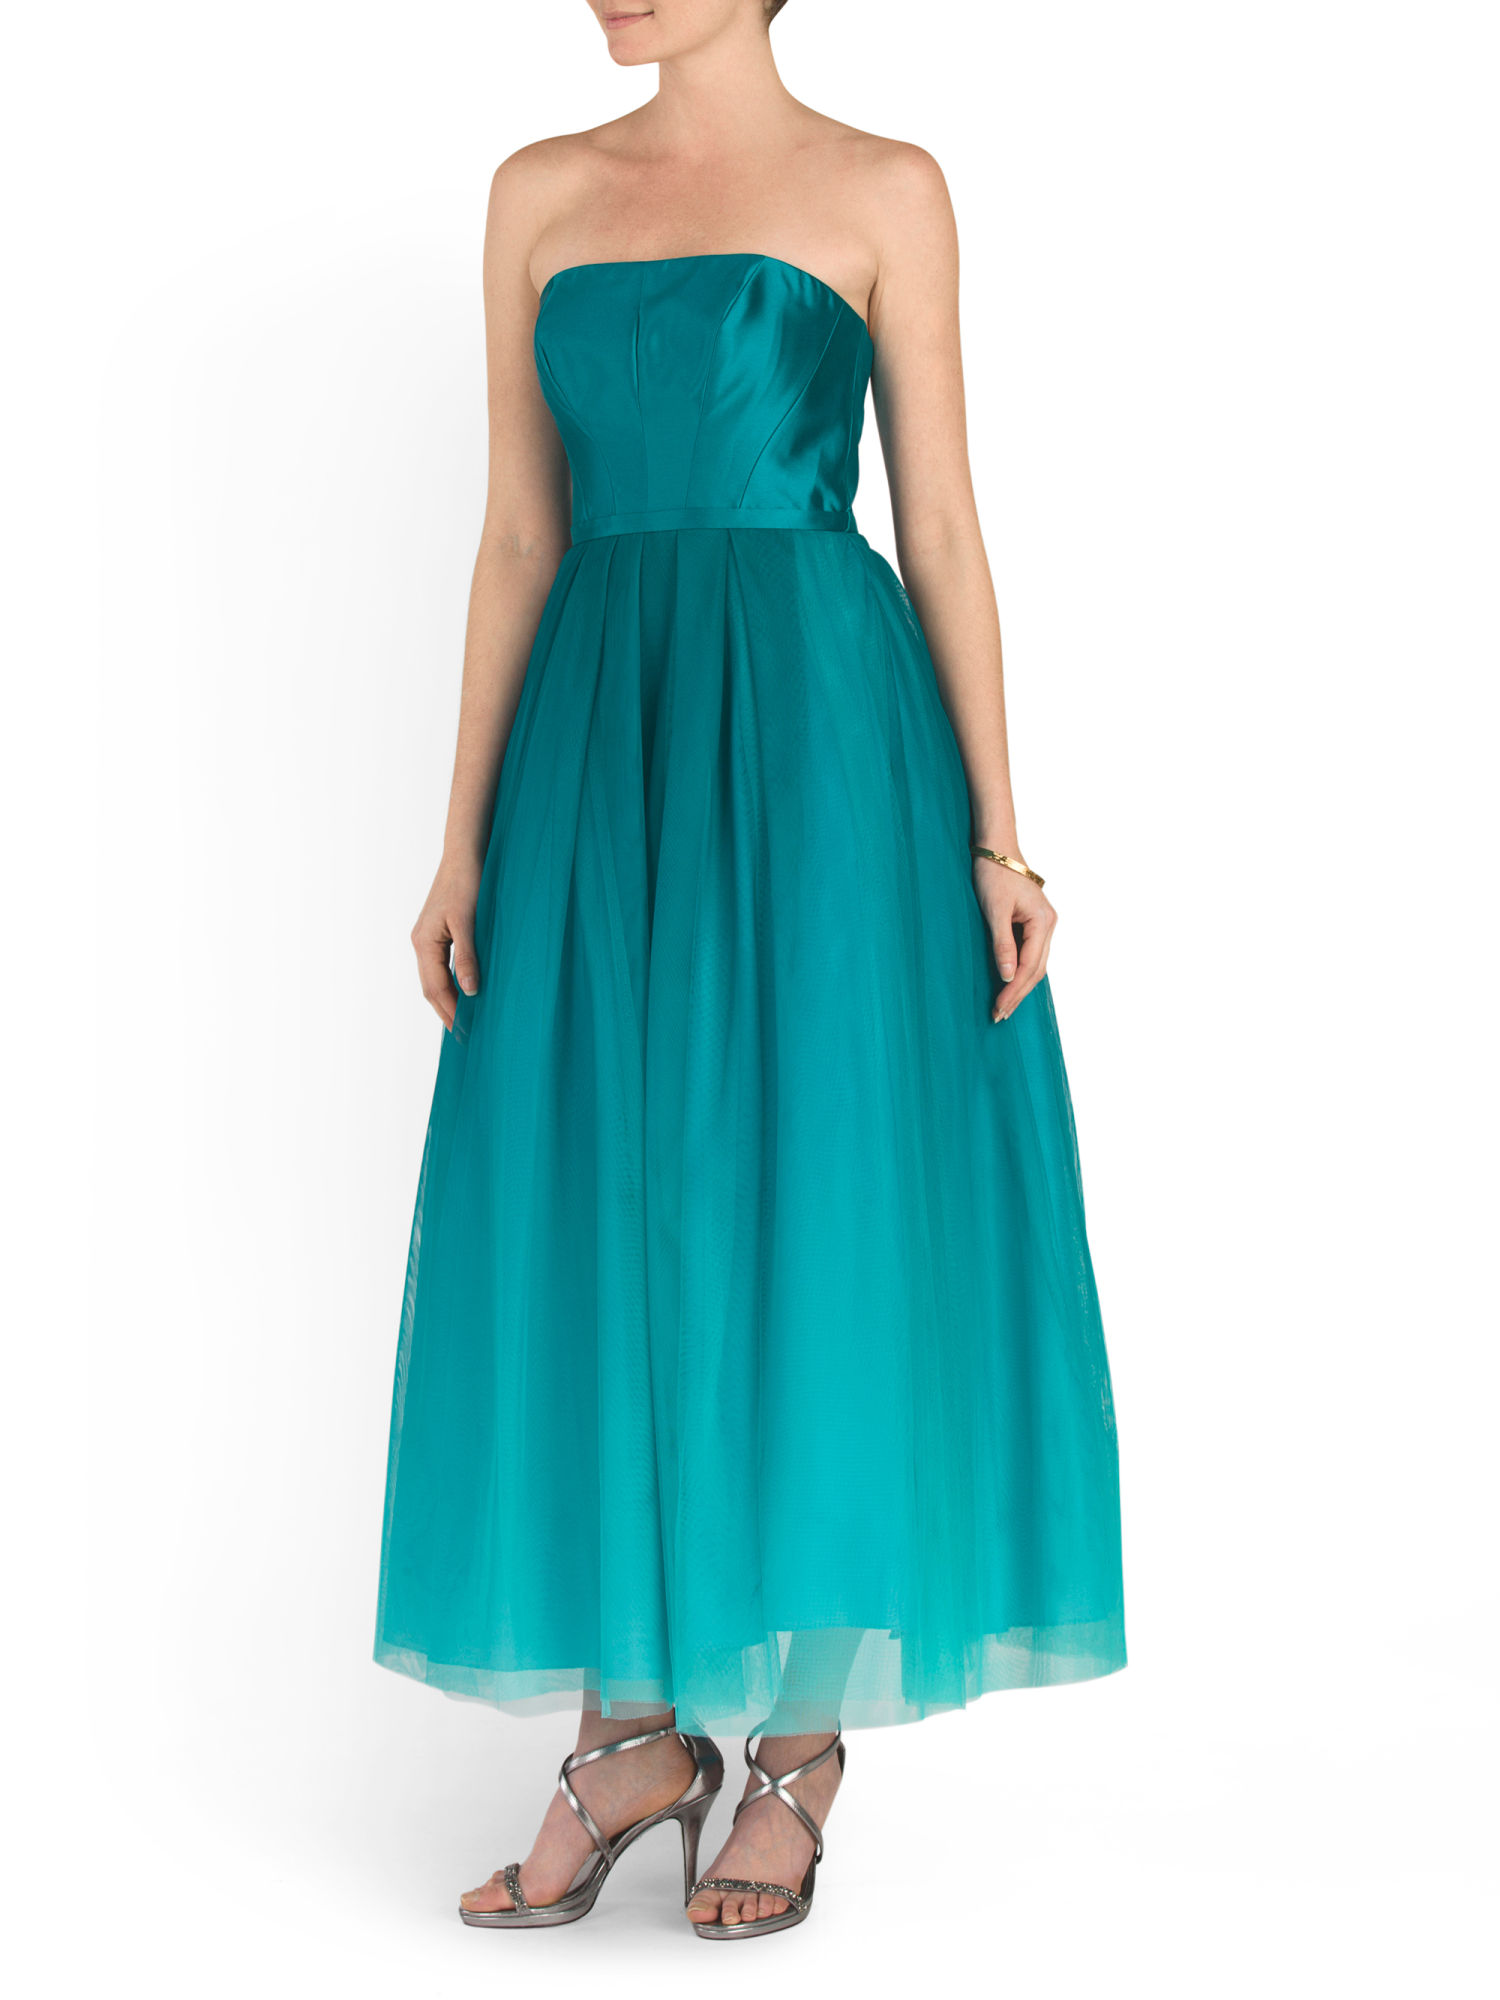 ML Monique Lhuillier Teal Strapless Ballet Length Gown